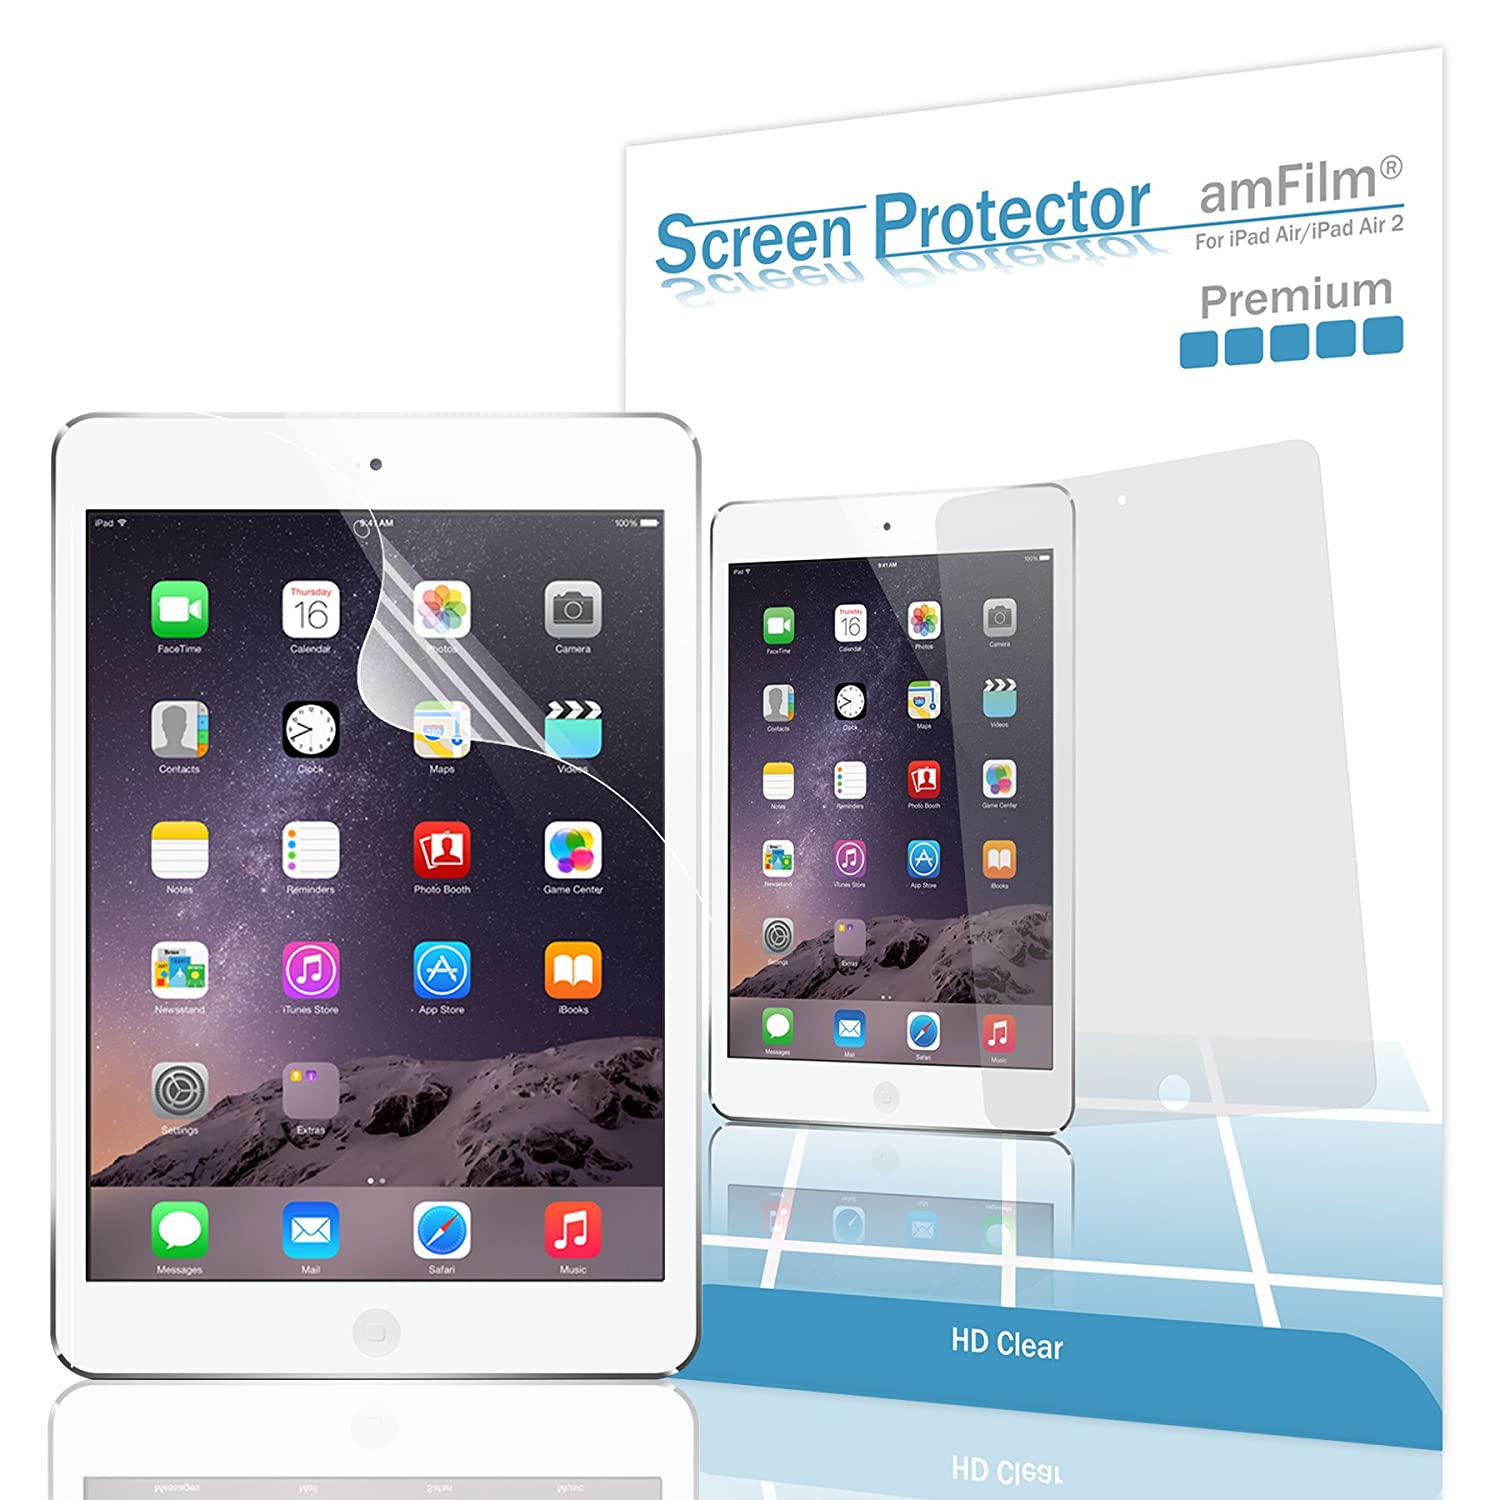 amFilm iPad Pro 9.7 inch/iPad Air Screen Protector HD Clear for Apple iPad Air 2, iPad Air, iPad Pro 9.7 inch 2016 (2-Pack)